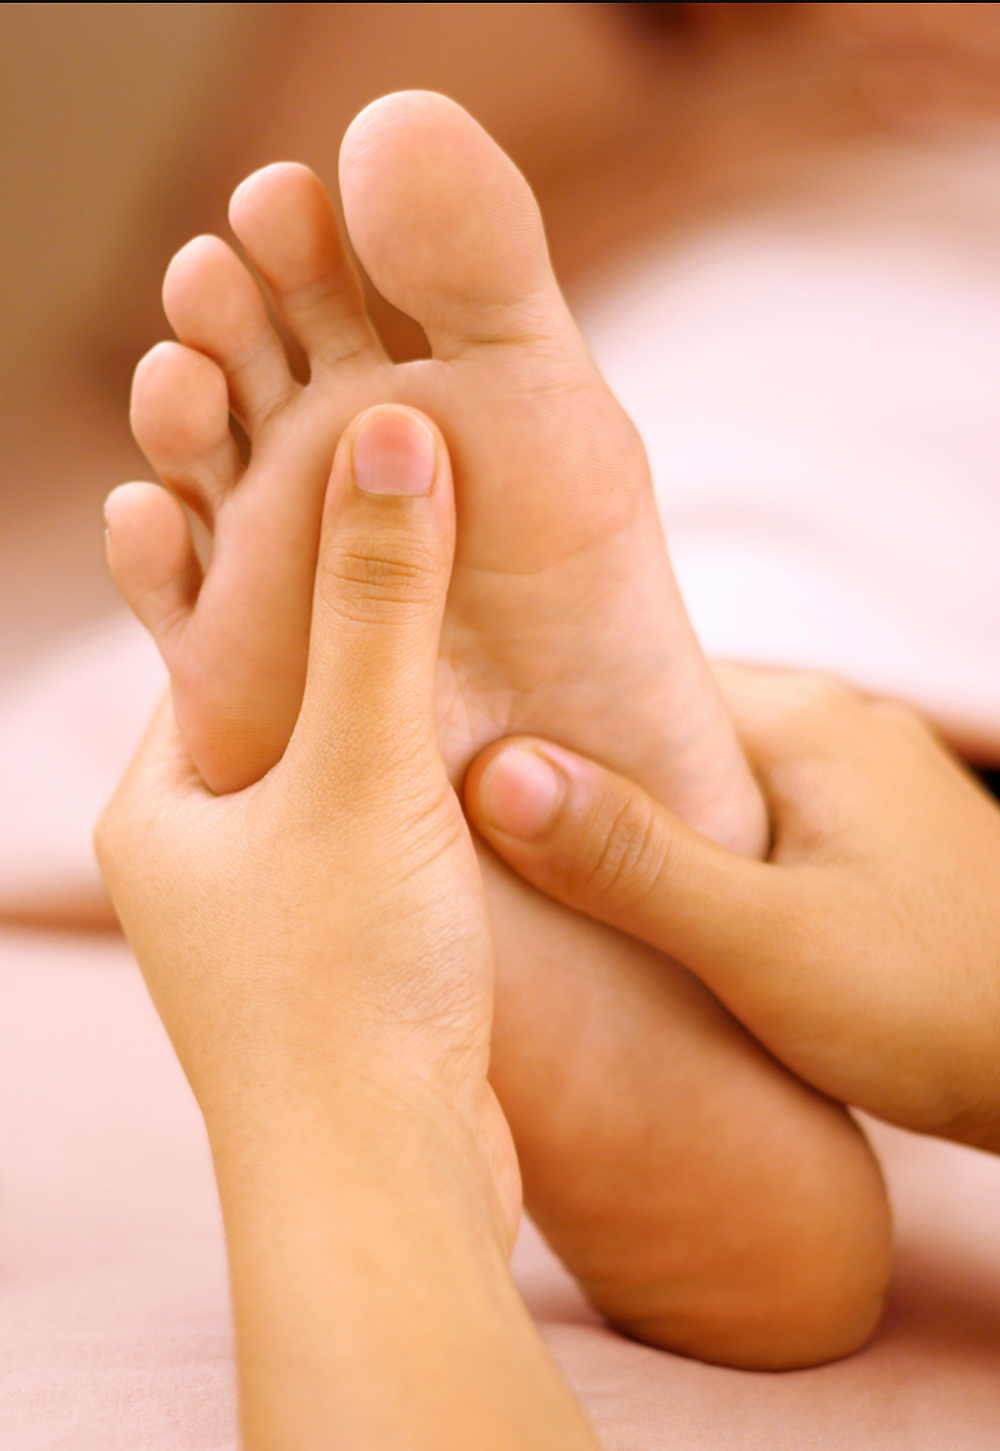 The sole of a foot being massaged using the thumbs of both of the therapists hands